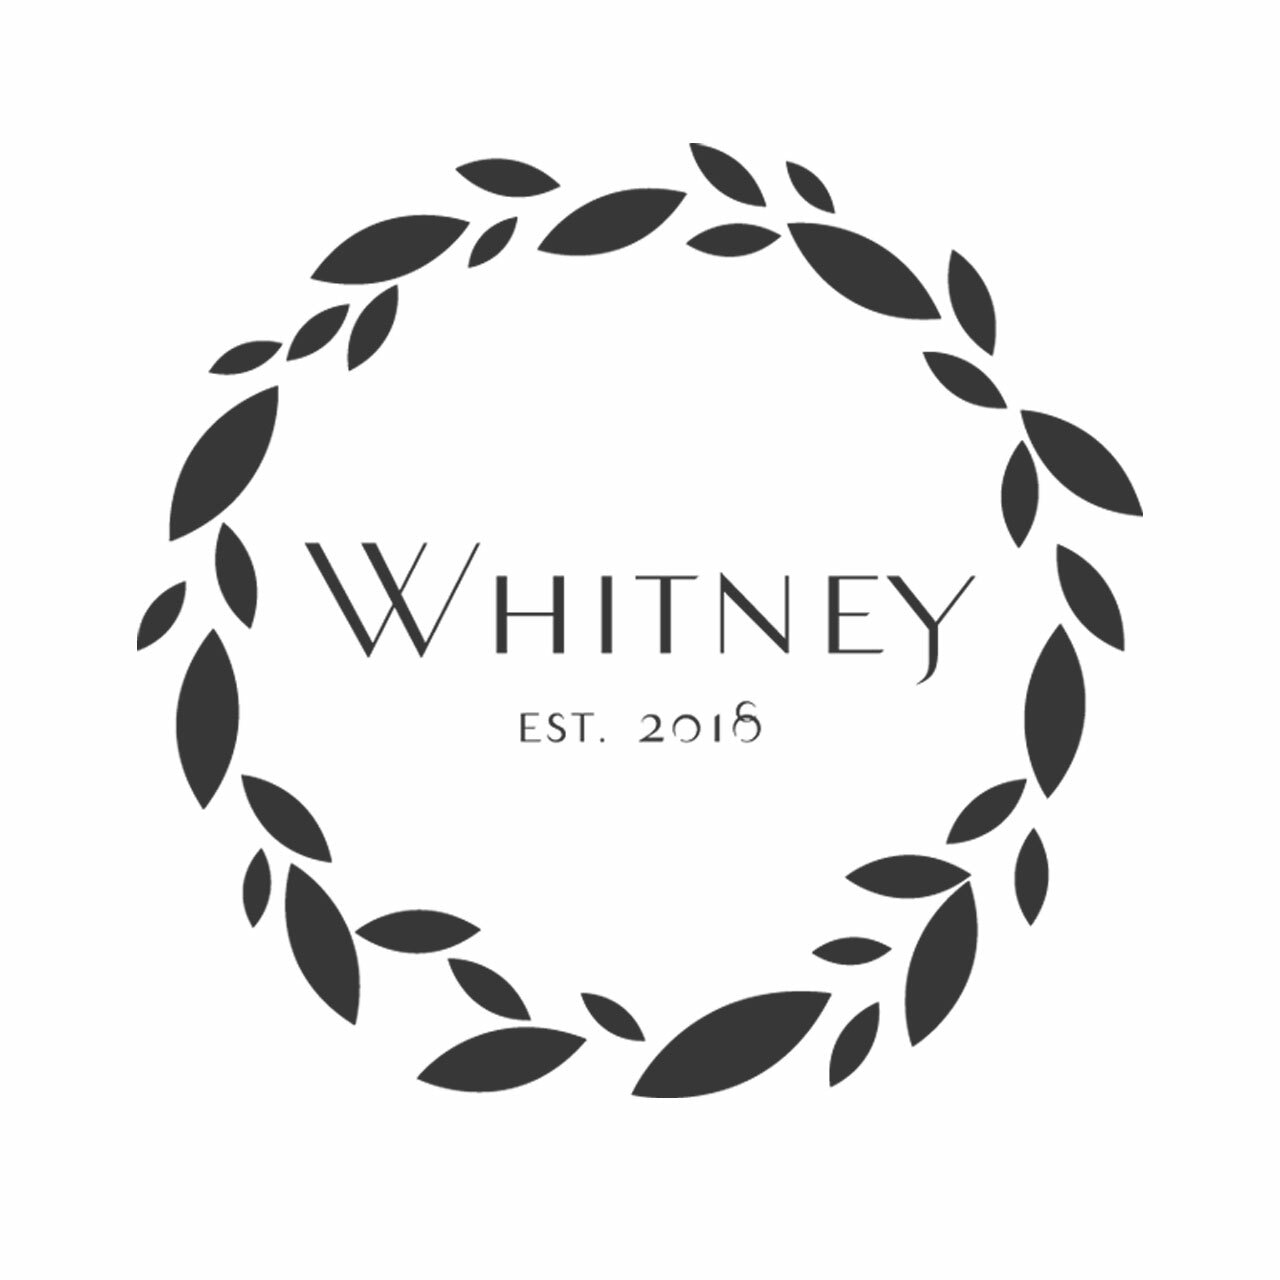 Leaf wreath around last name and year established on a white background